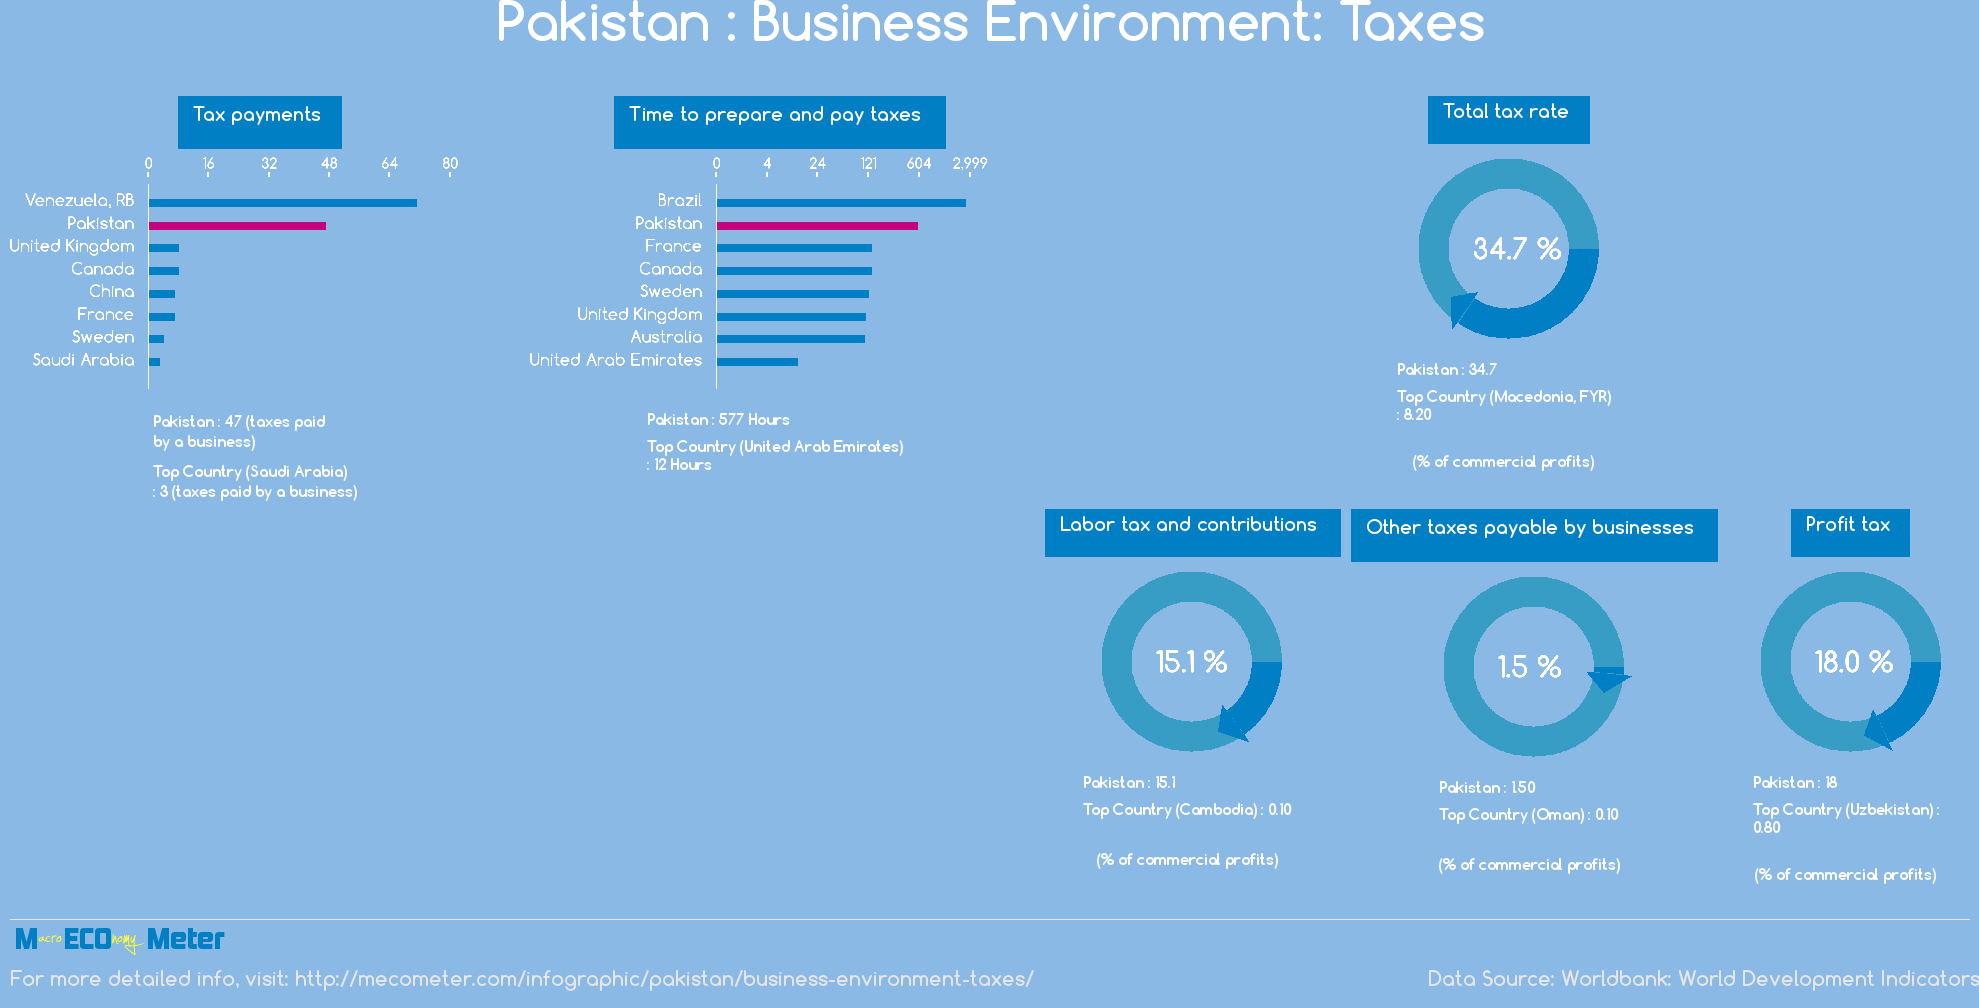 Pakistan : Business Environment: Taxes